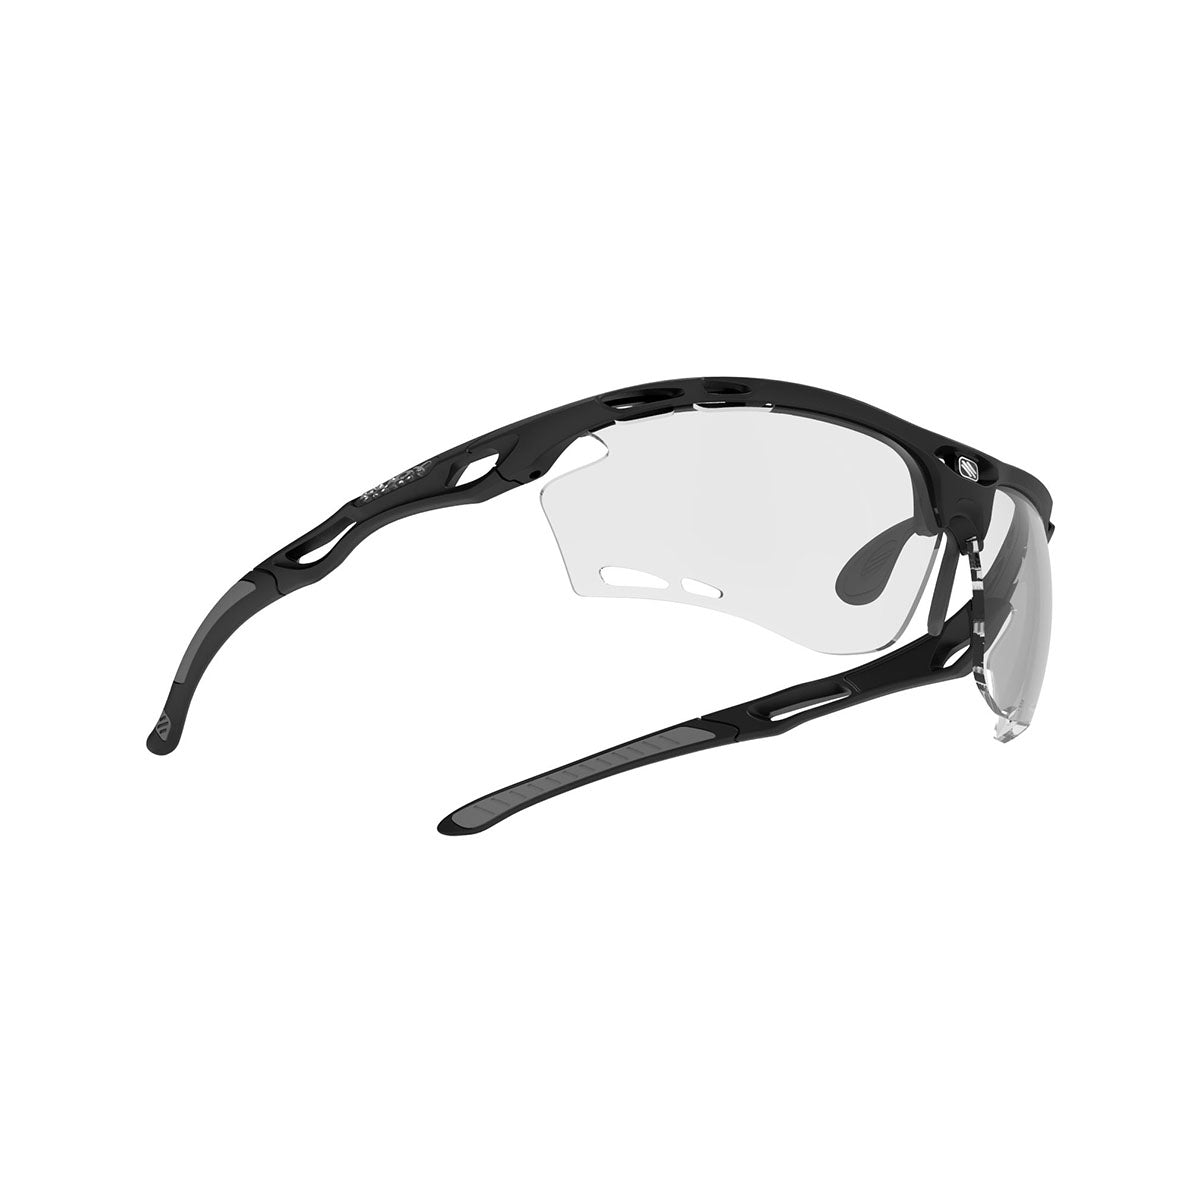 Rudy Project - Propulse - frame color: Matte Black - lens color: ImpactX-2 Photochromic Clear to Black - Bumper Color:  - photo angle: Bottom Front Angle Variant Hover Image